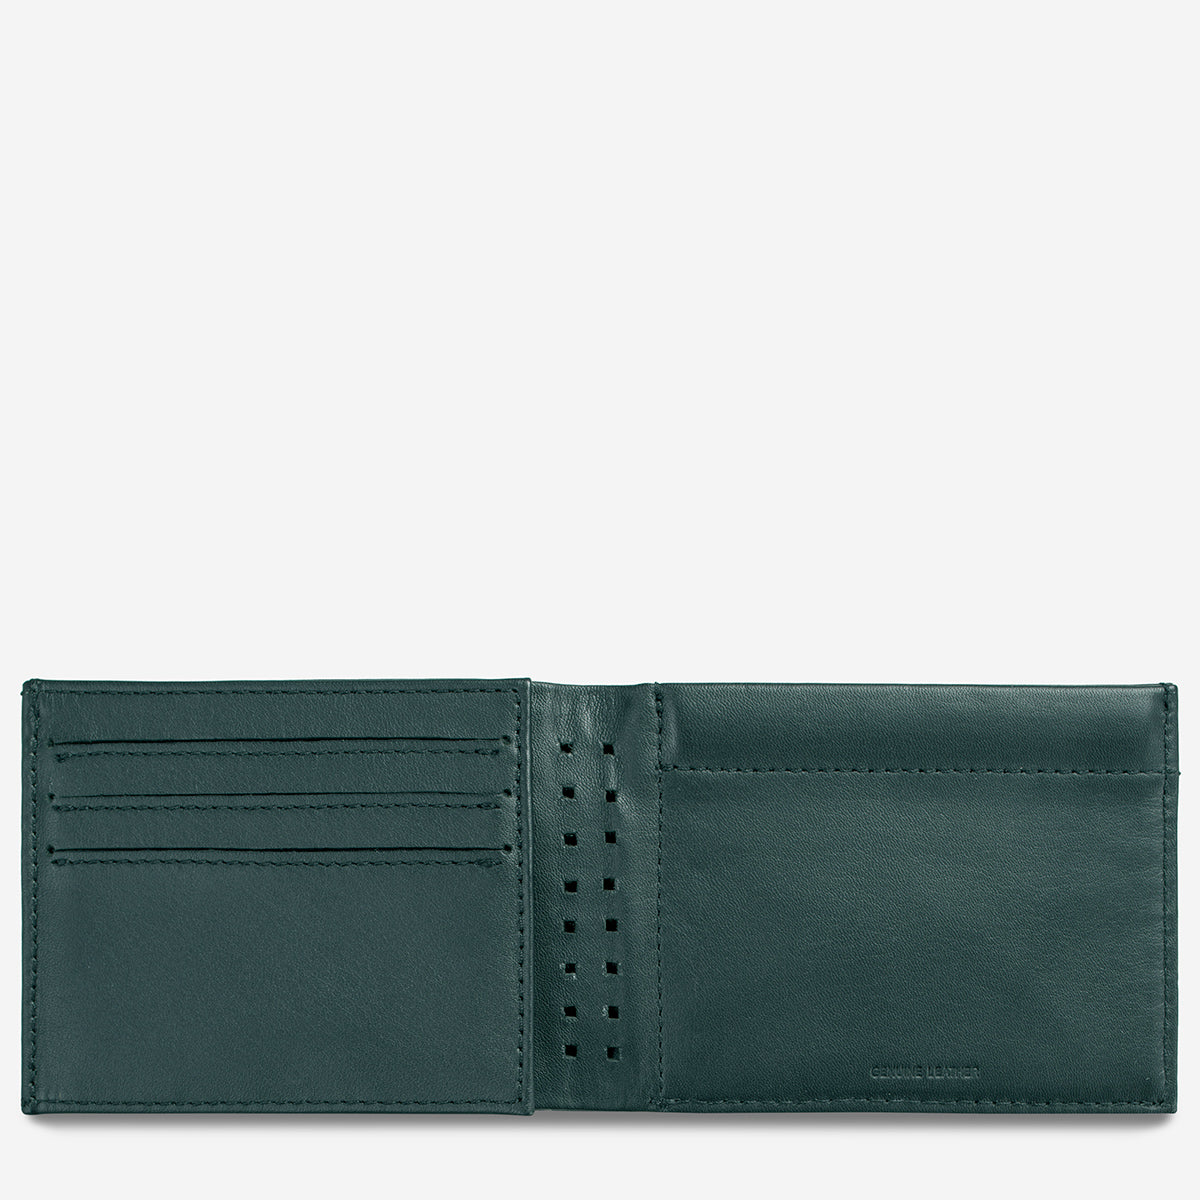 Status Anxiety Noah Men's Leather Wallet - Teal